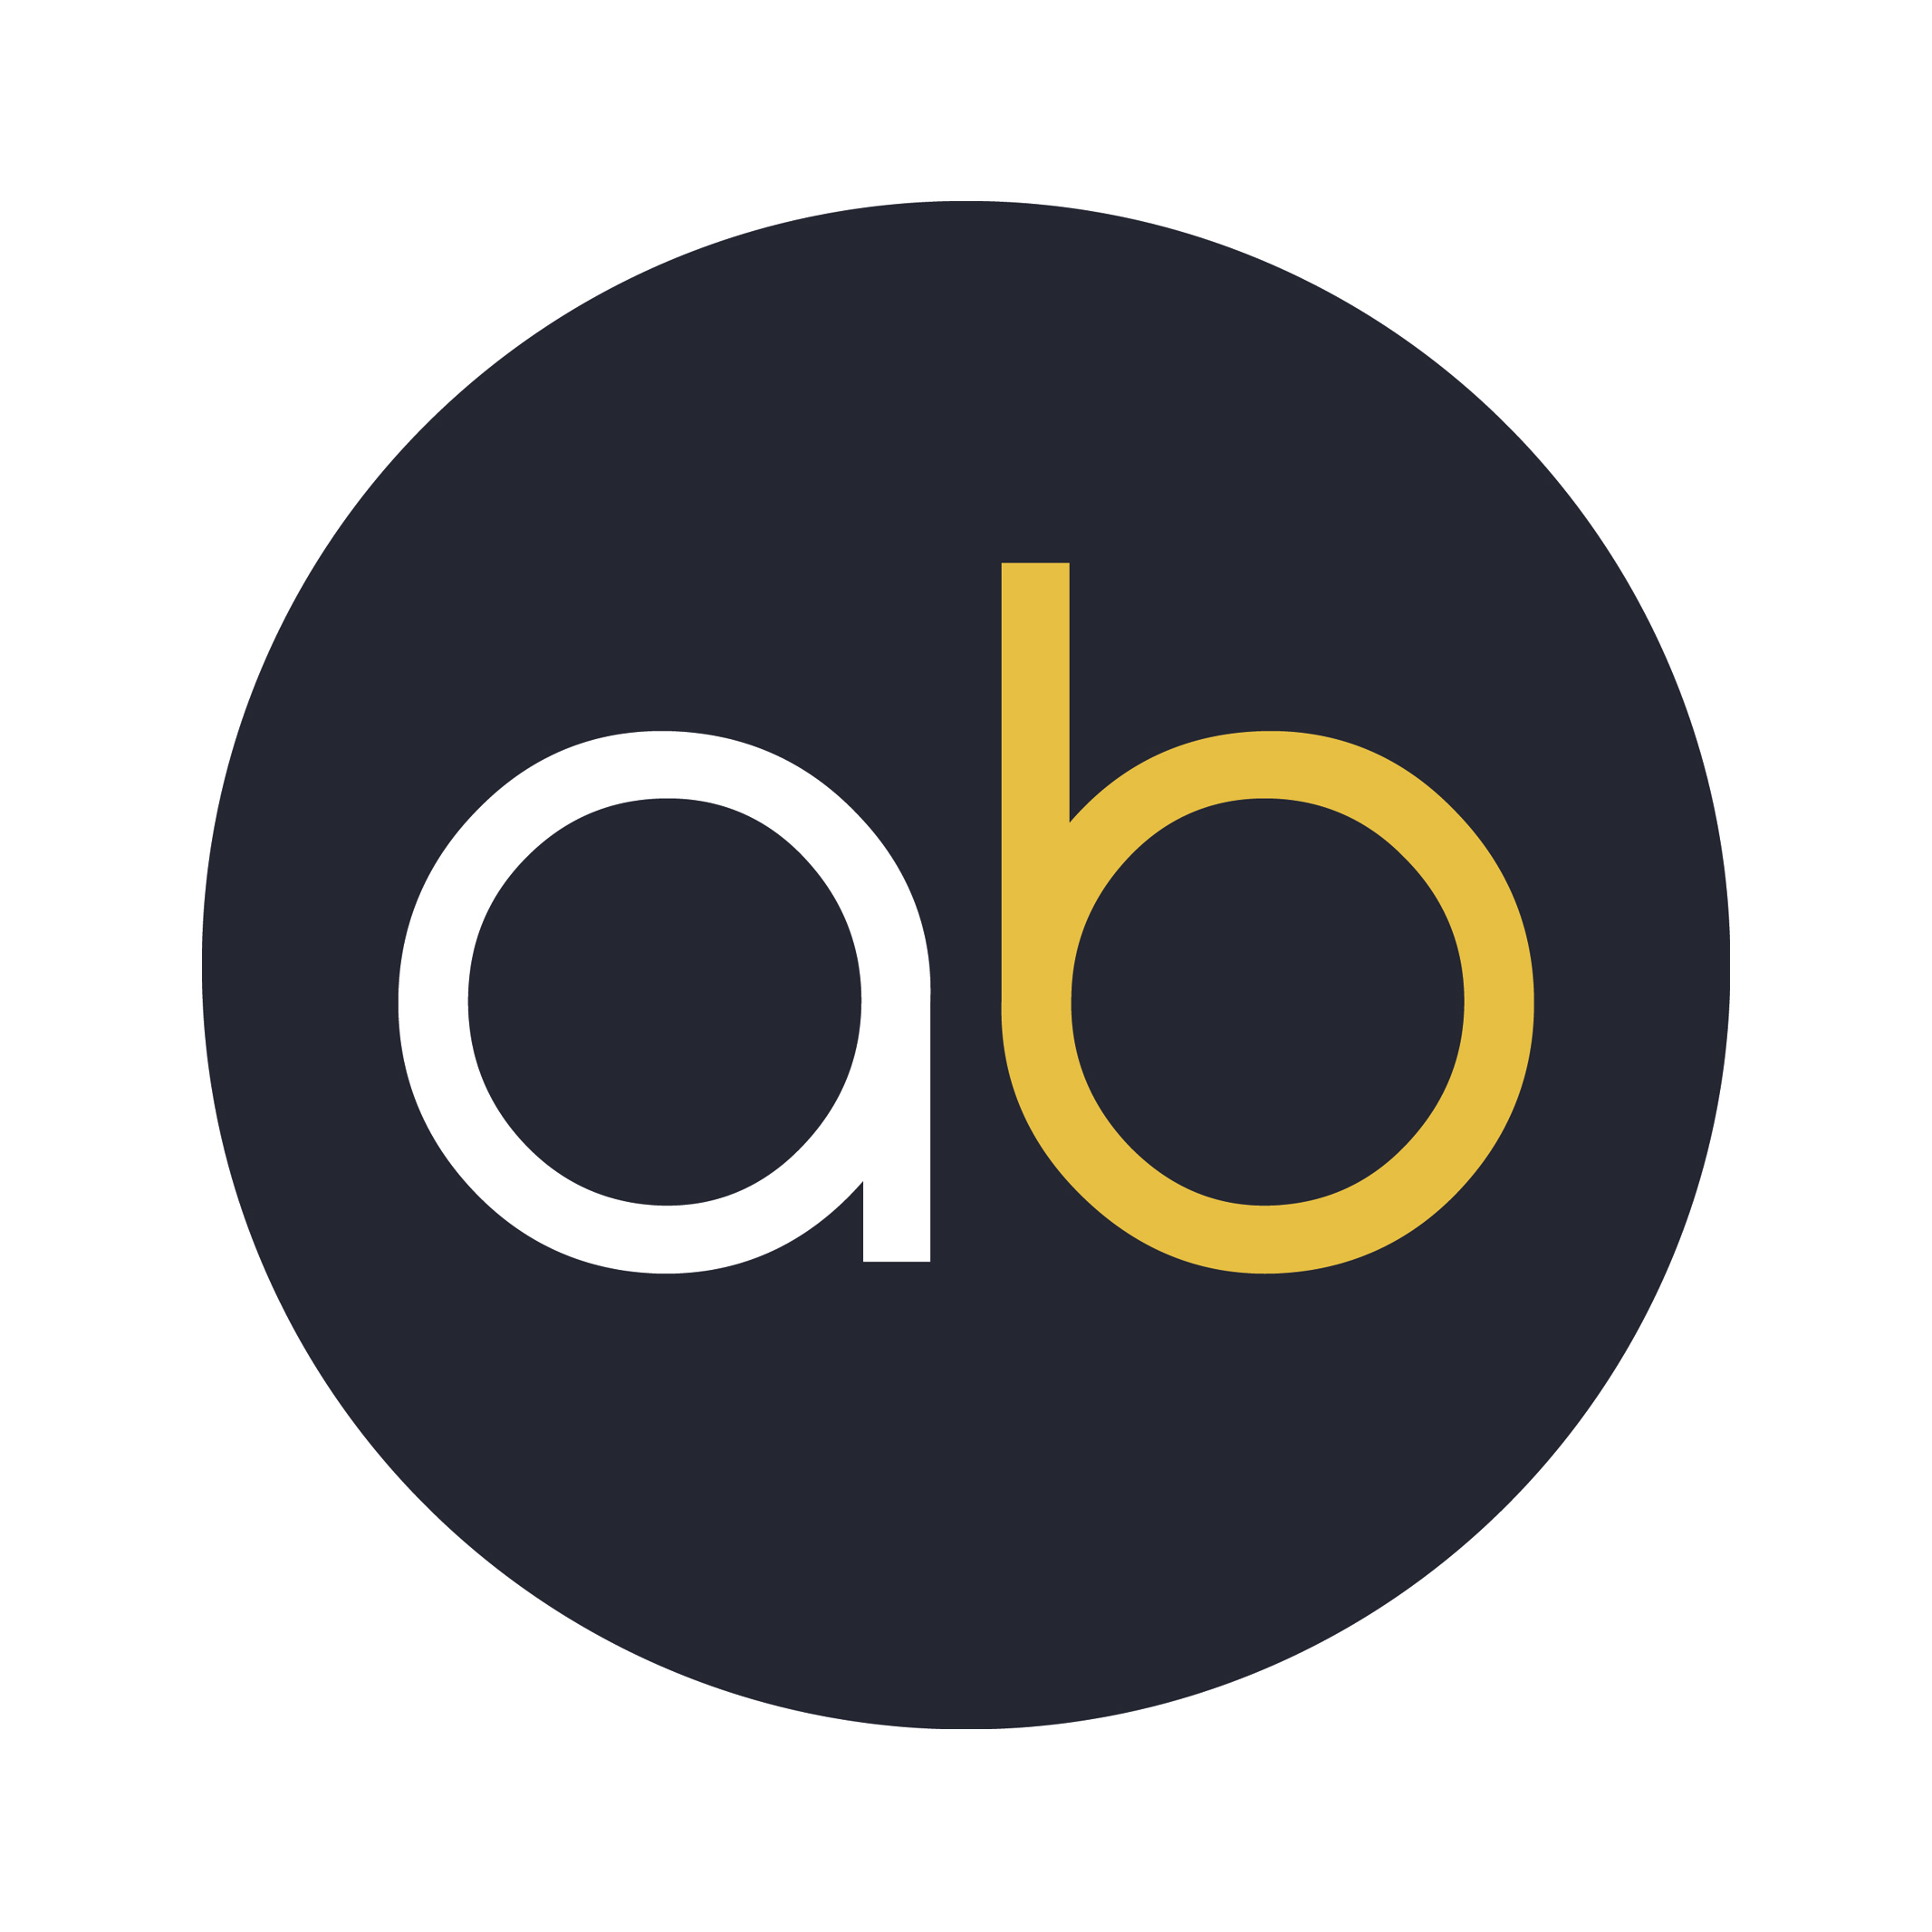 abodebed - Luxury Serviced Apartments